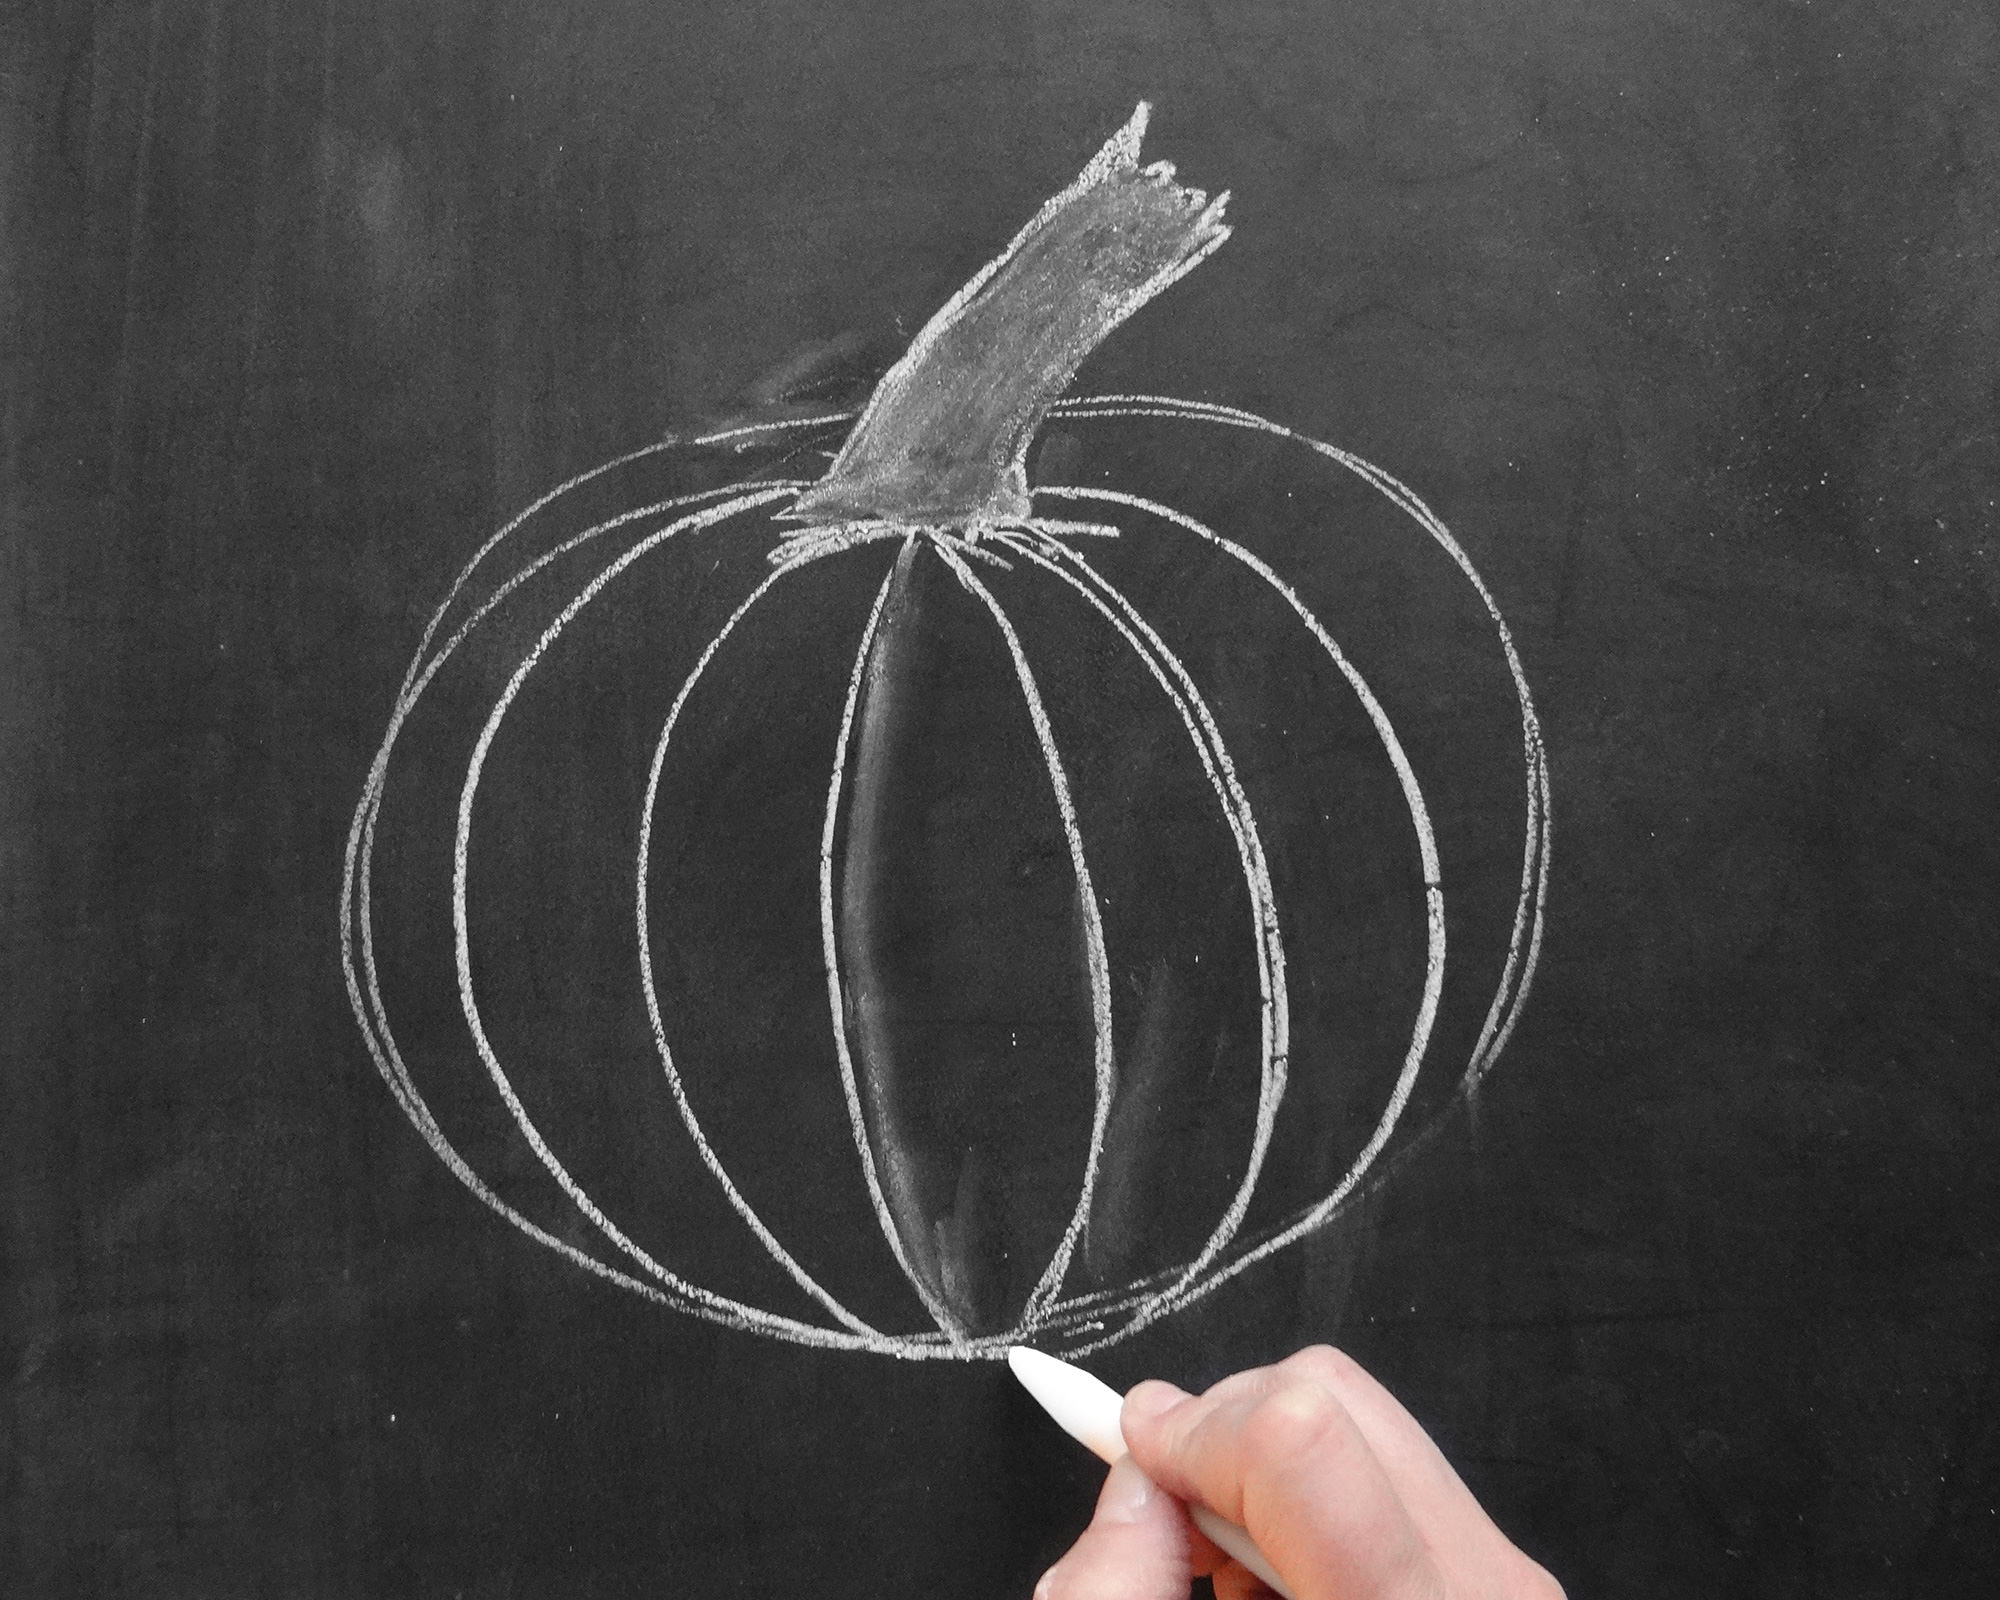 Drawn pumpkin chalk Breaks how Draw Lily for